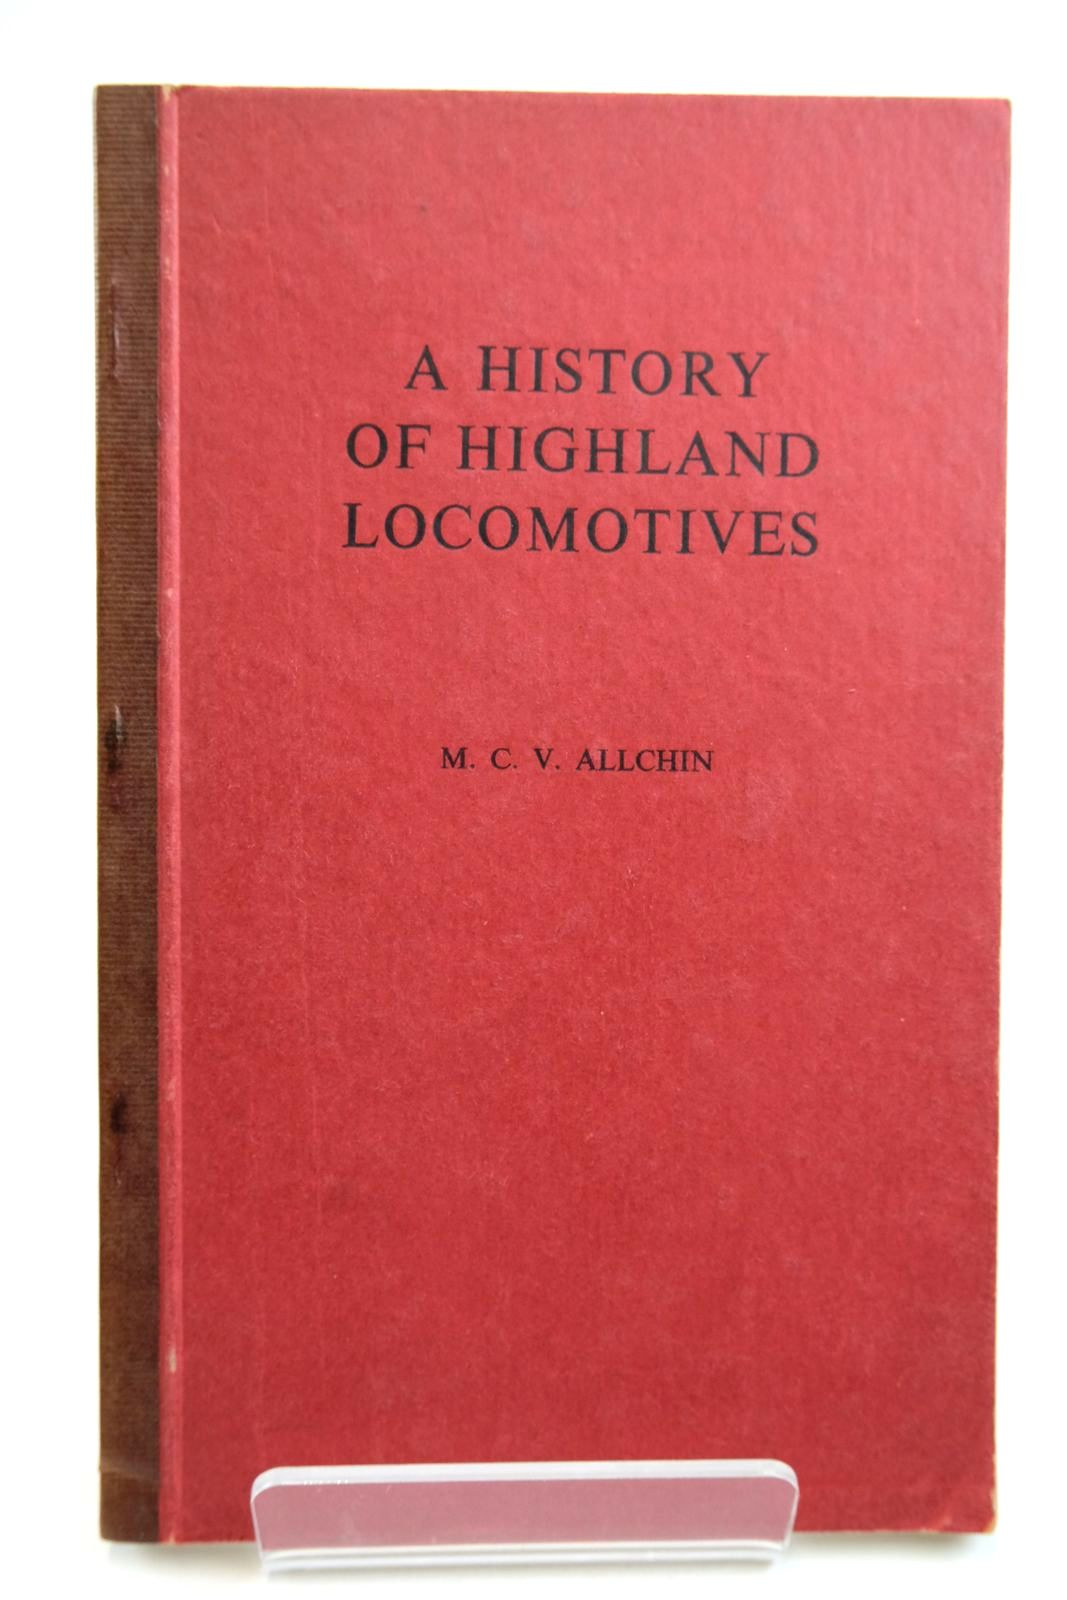 Photo of A HISTORY OF HIGHLAND LOCOMOTIVES- Stock Number: 2133320